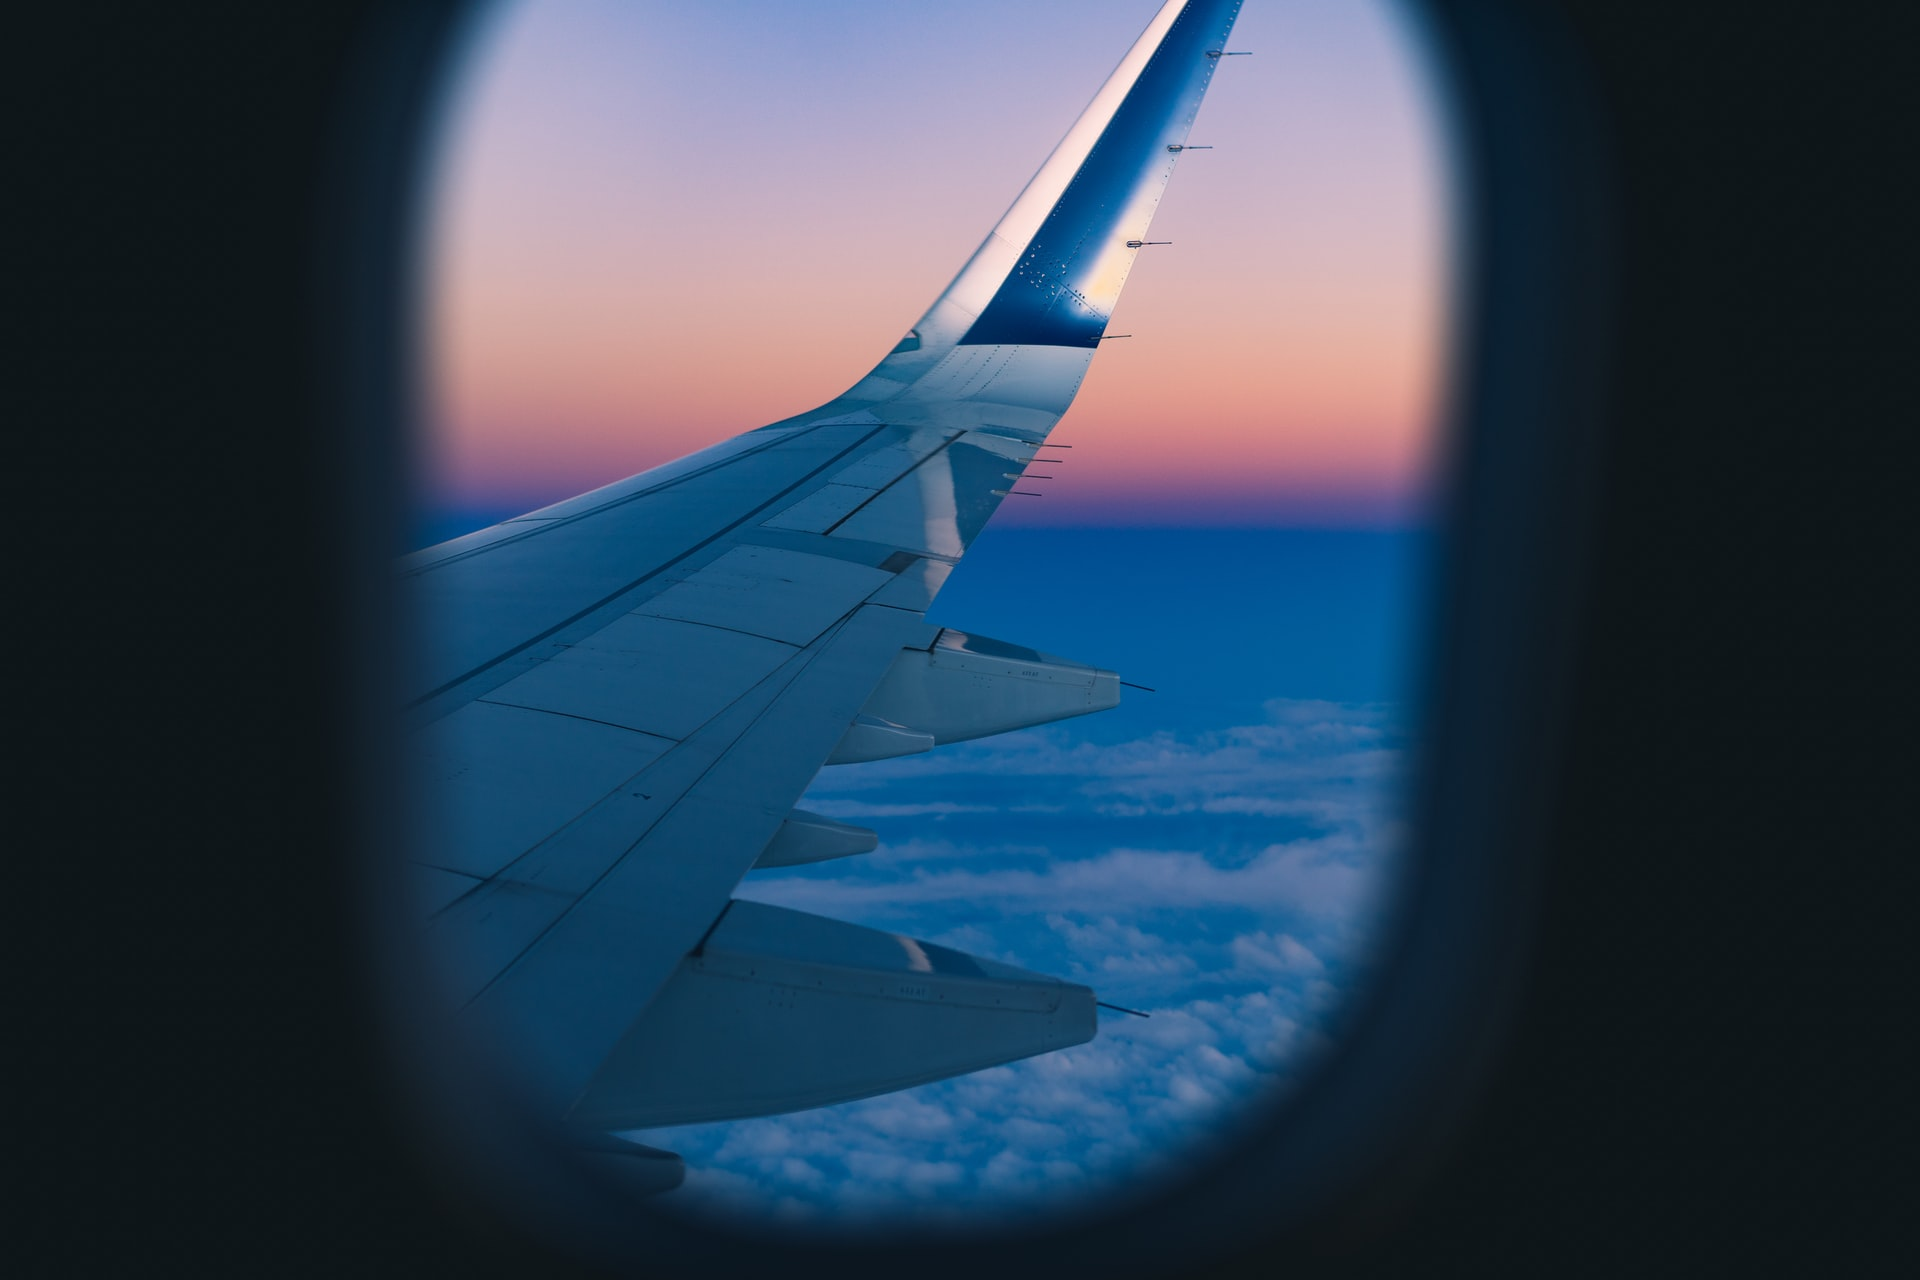 Image of a sunrise sky from a plane window